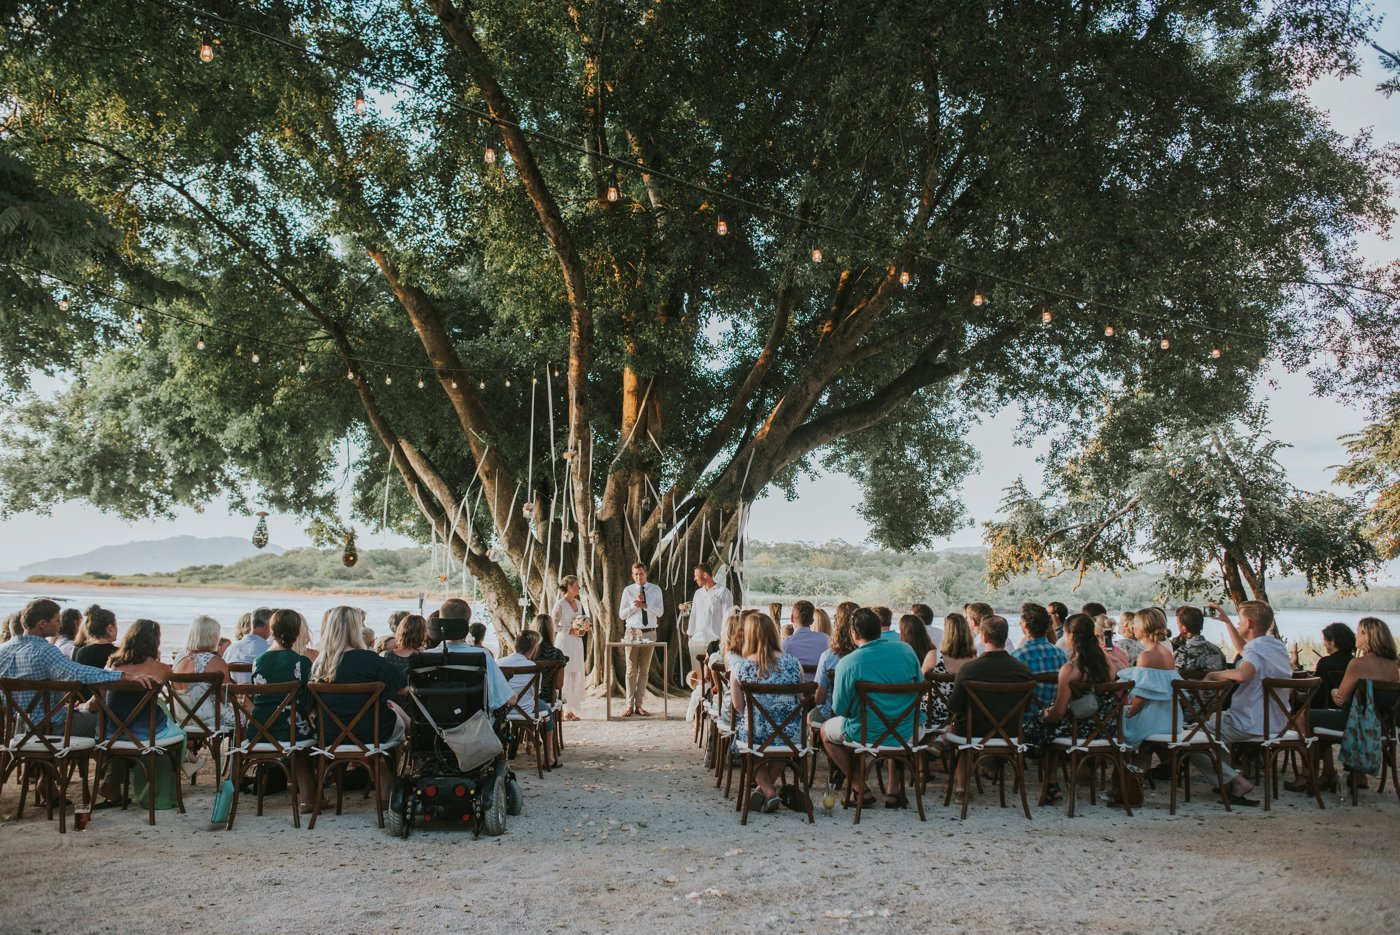 Bethany_Briton_beach_wedding_pangas_club_tamarindo_0041.jpg